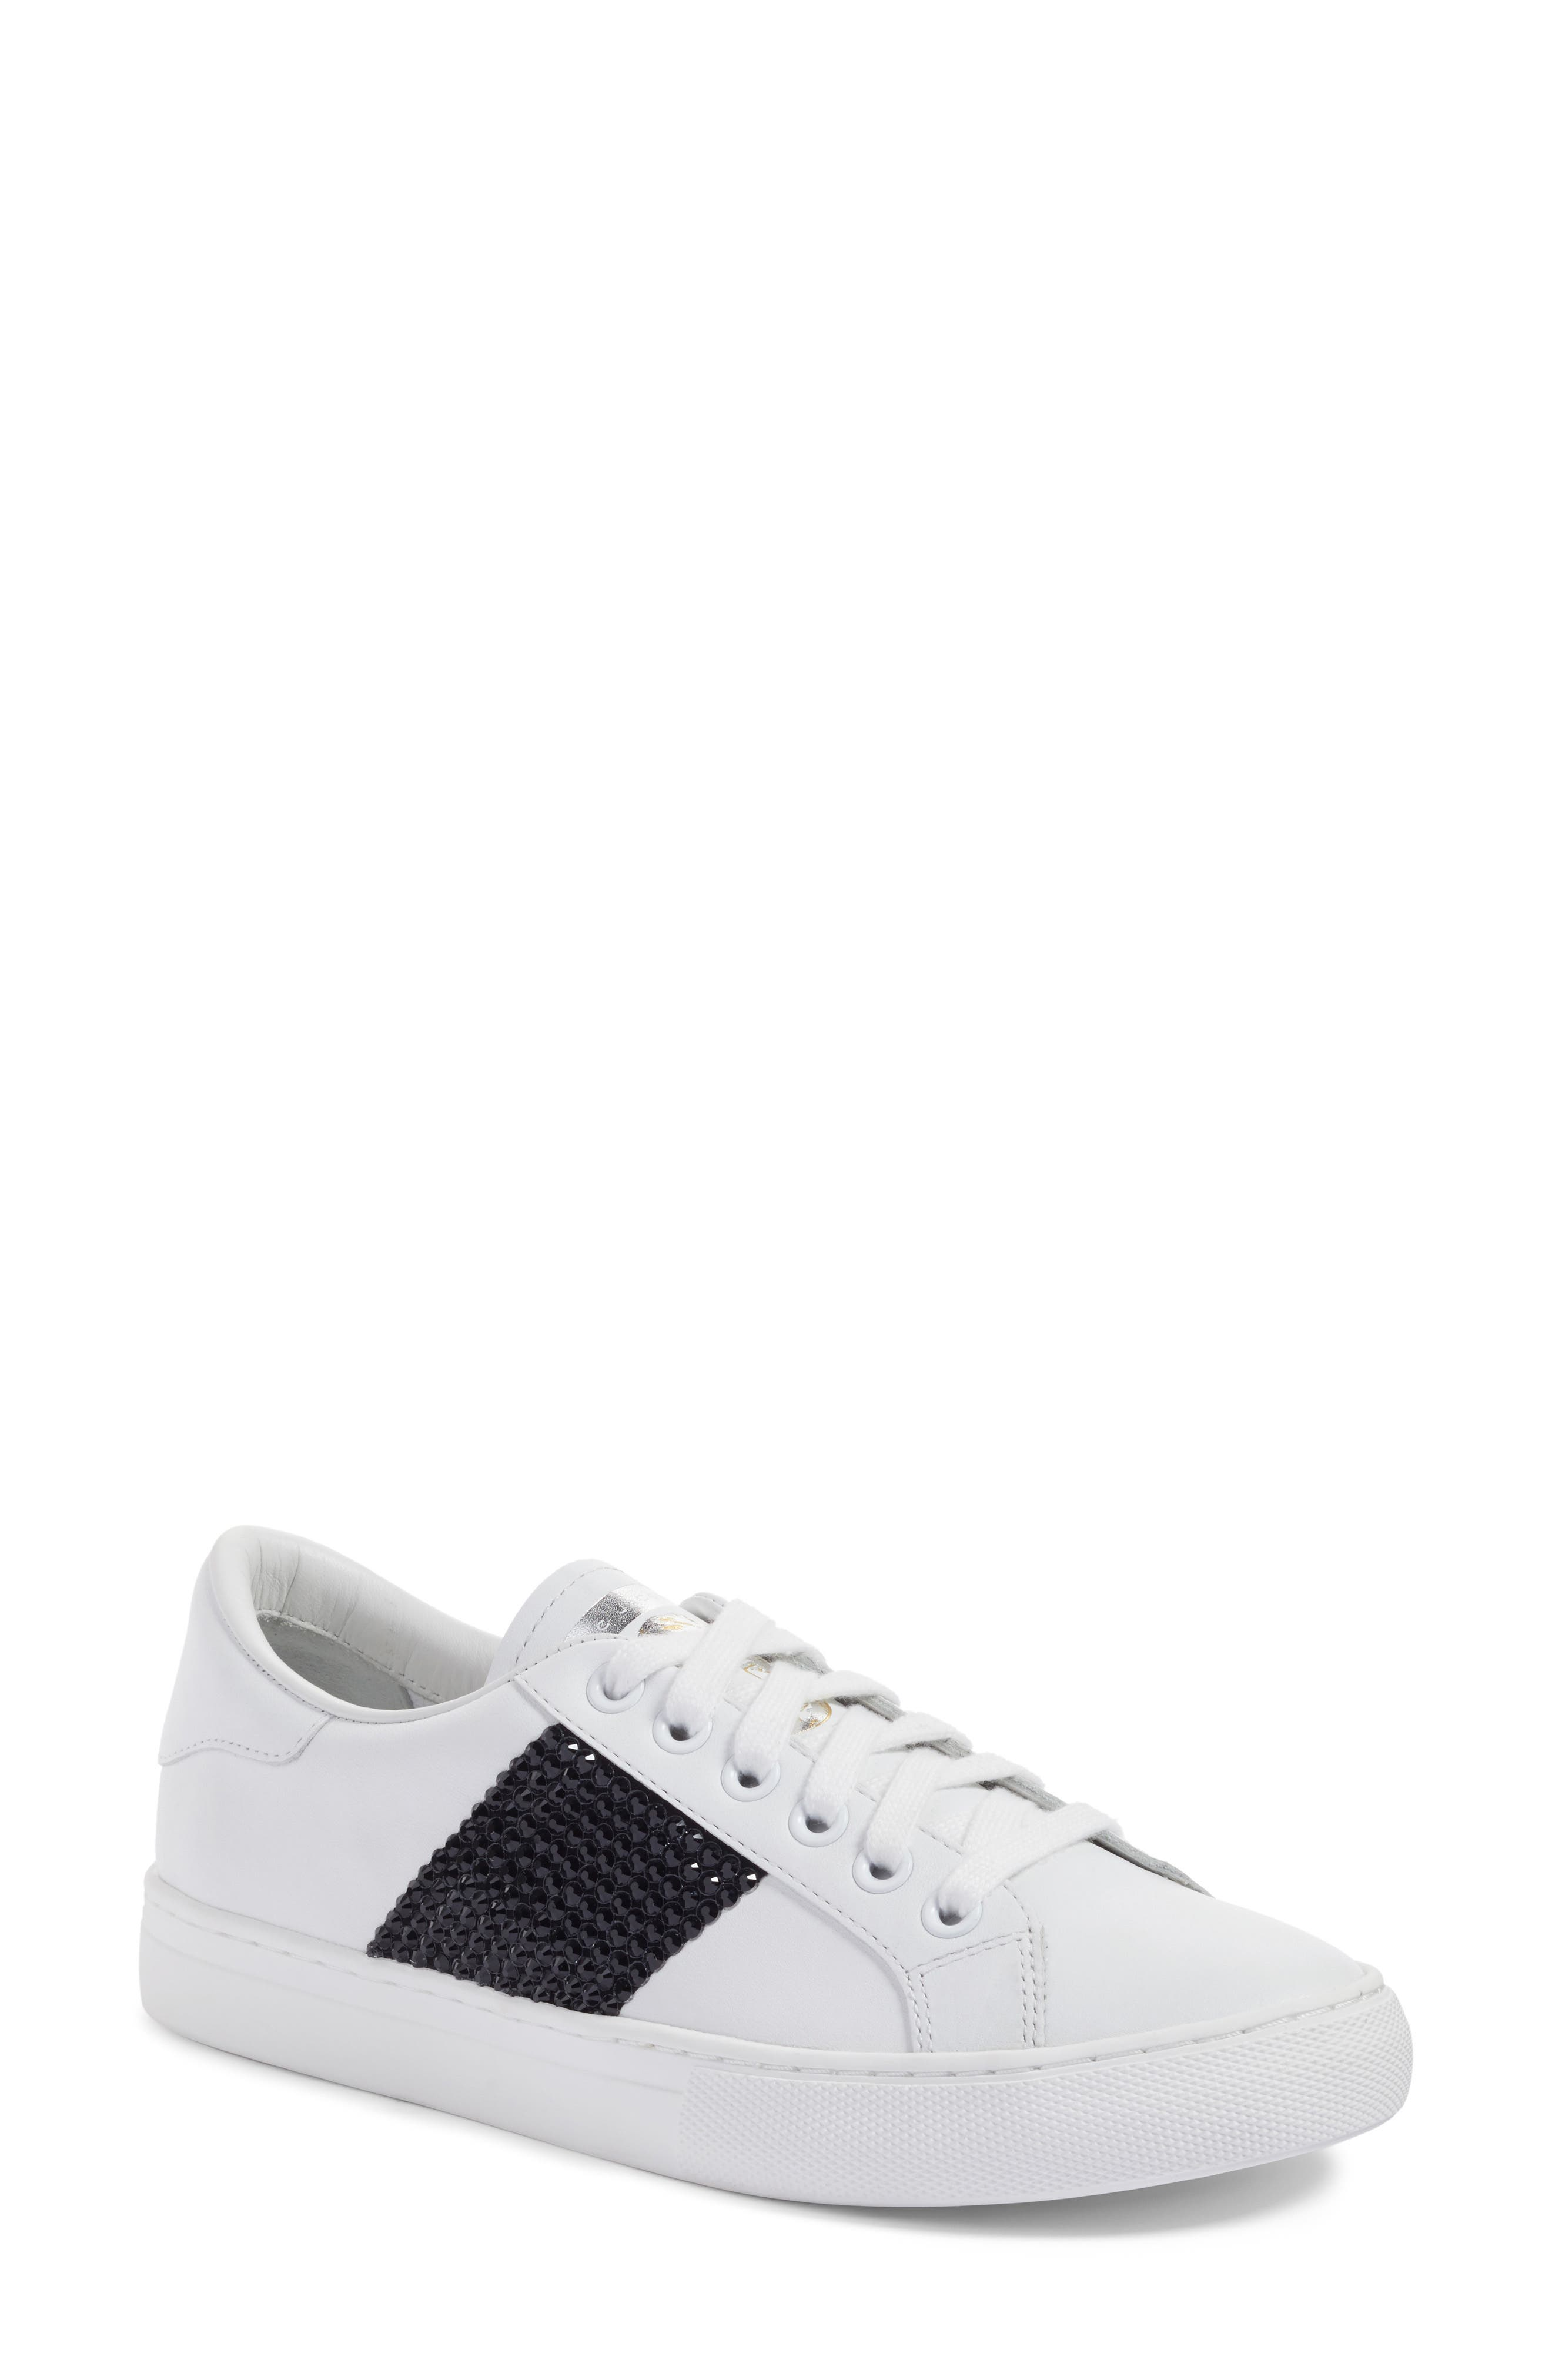 Empire Embellished Sneaker,                         Main,                         color, 160